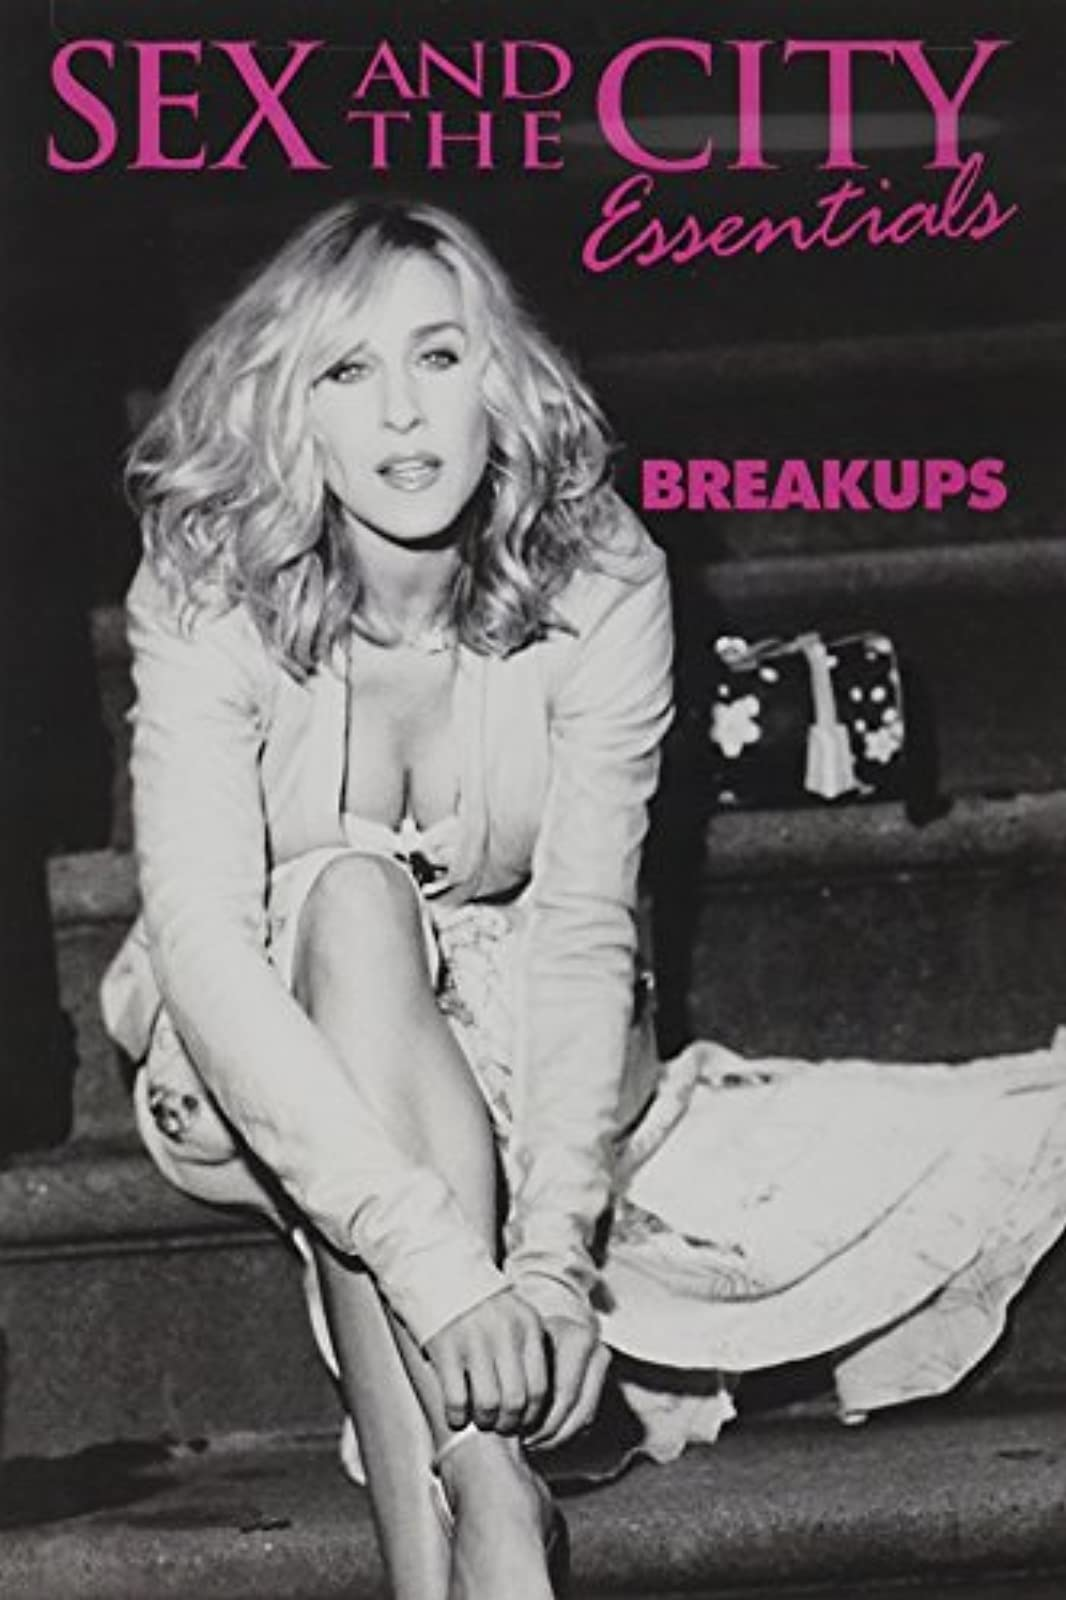 Sex And The City Essentials The Best Of Breakups Drama